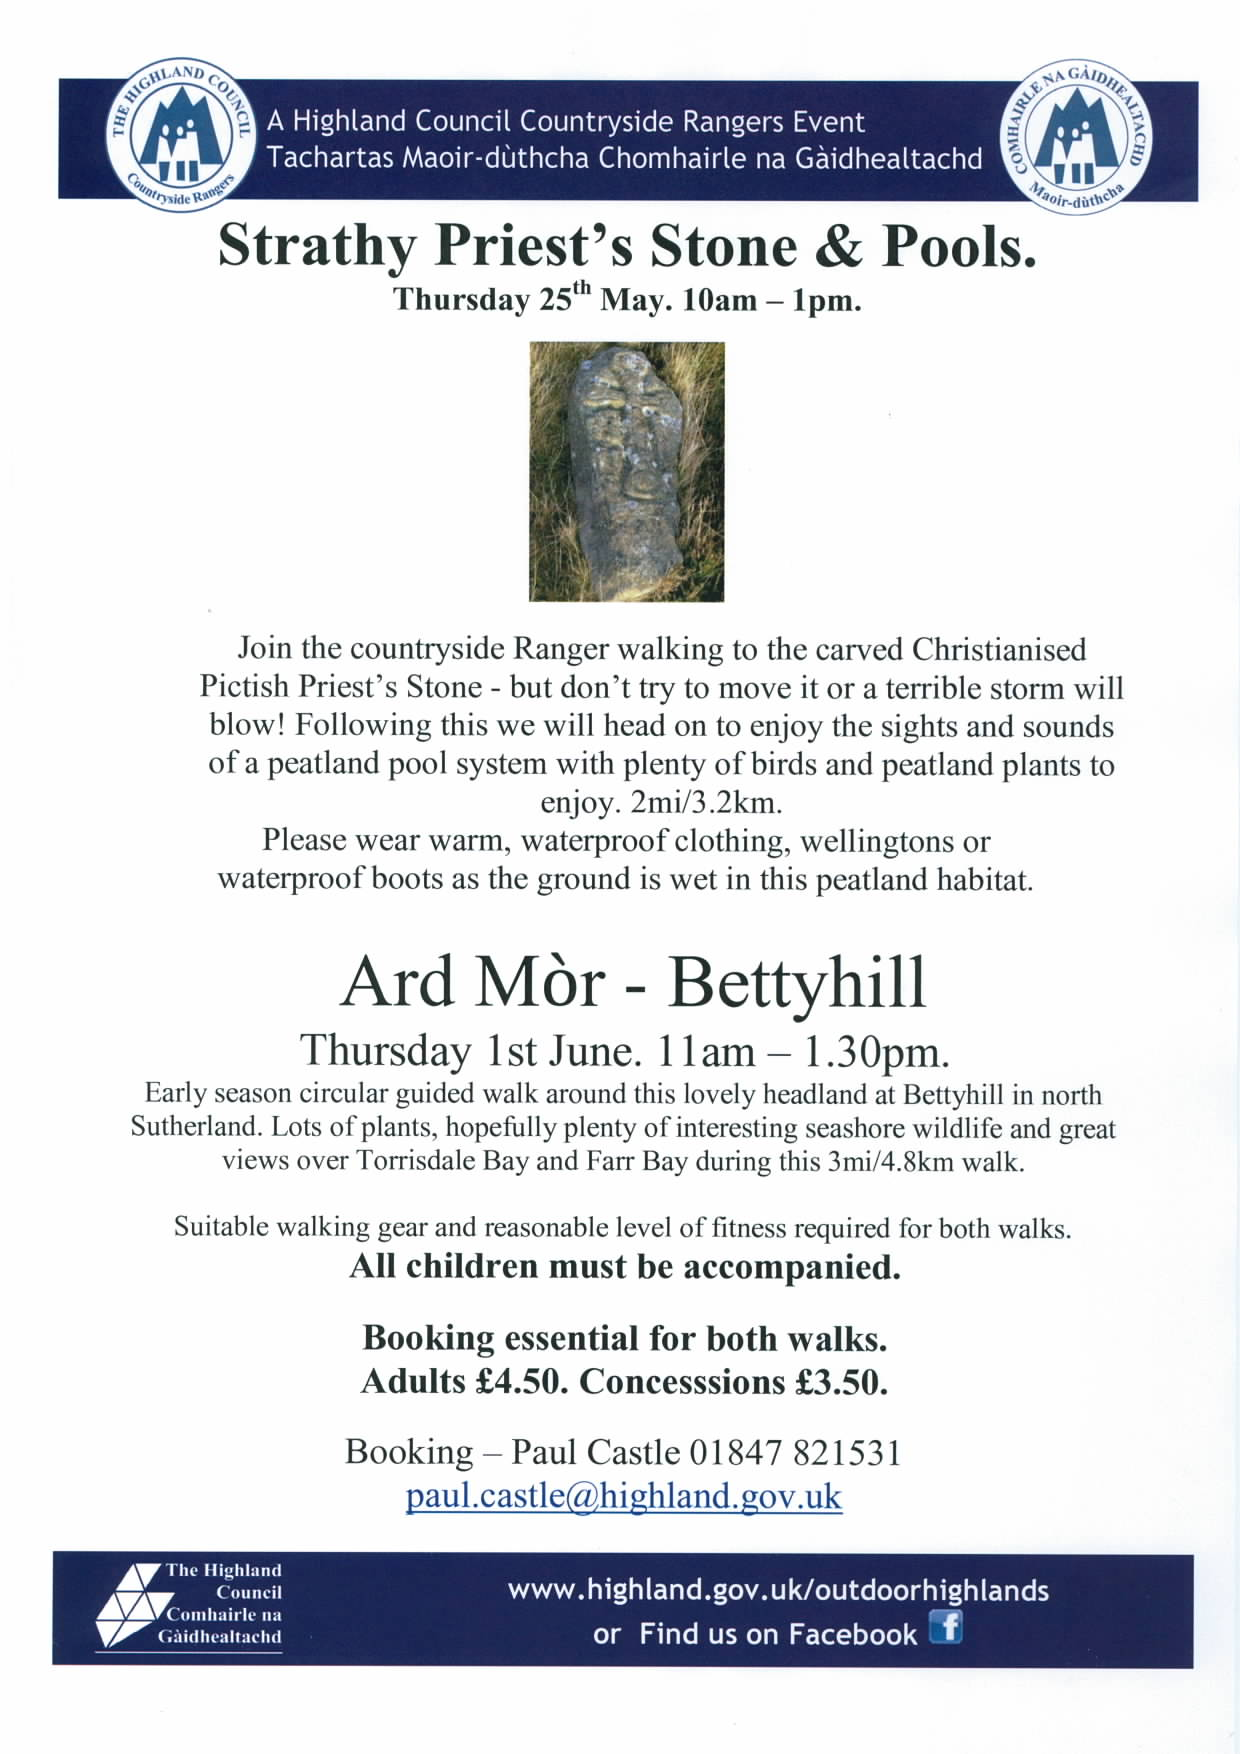 Strathy and Ard Mor guided walk